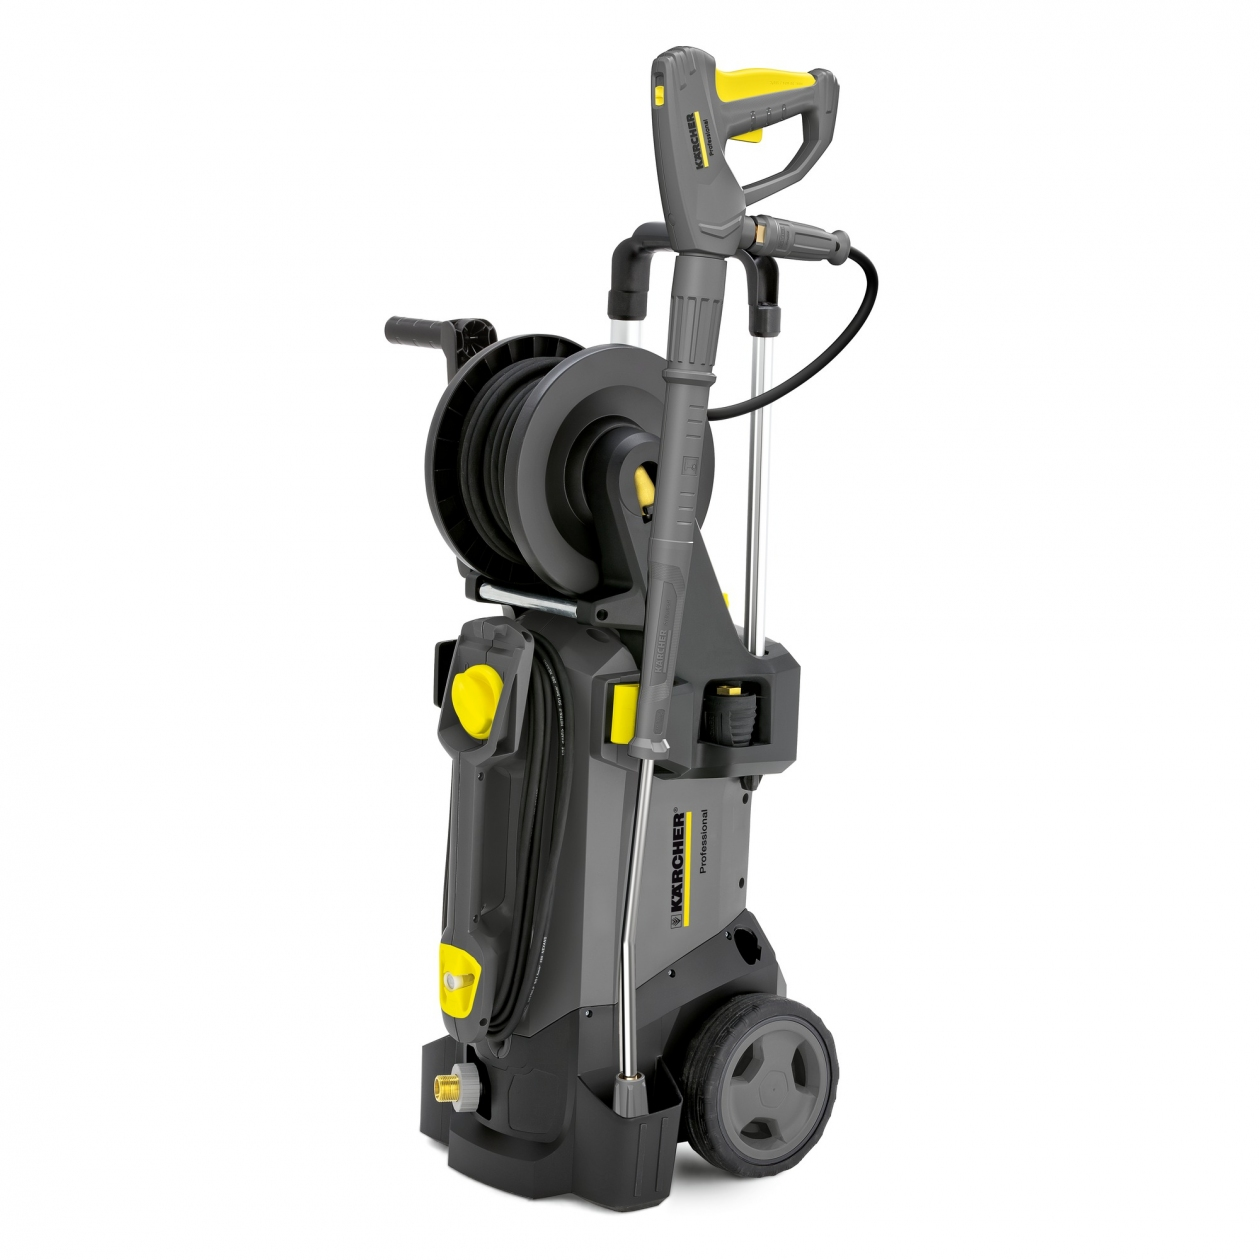 KARCHER Kärcher HD 5/15 CX Plus 1.520-932